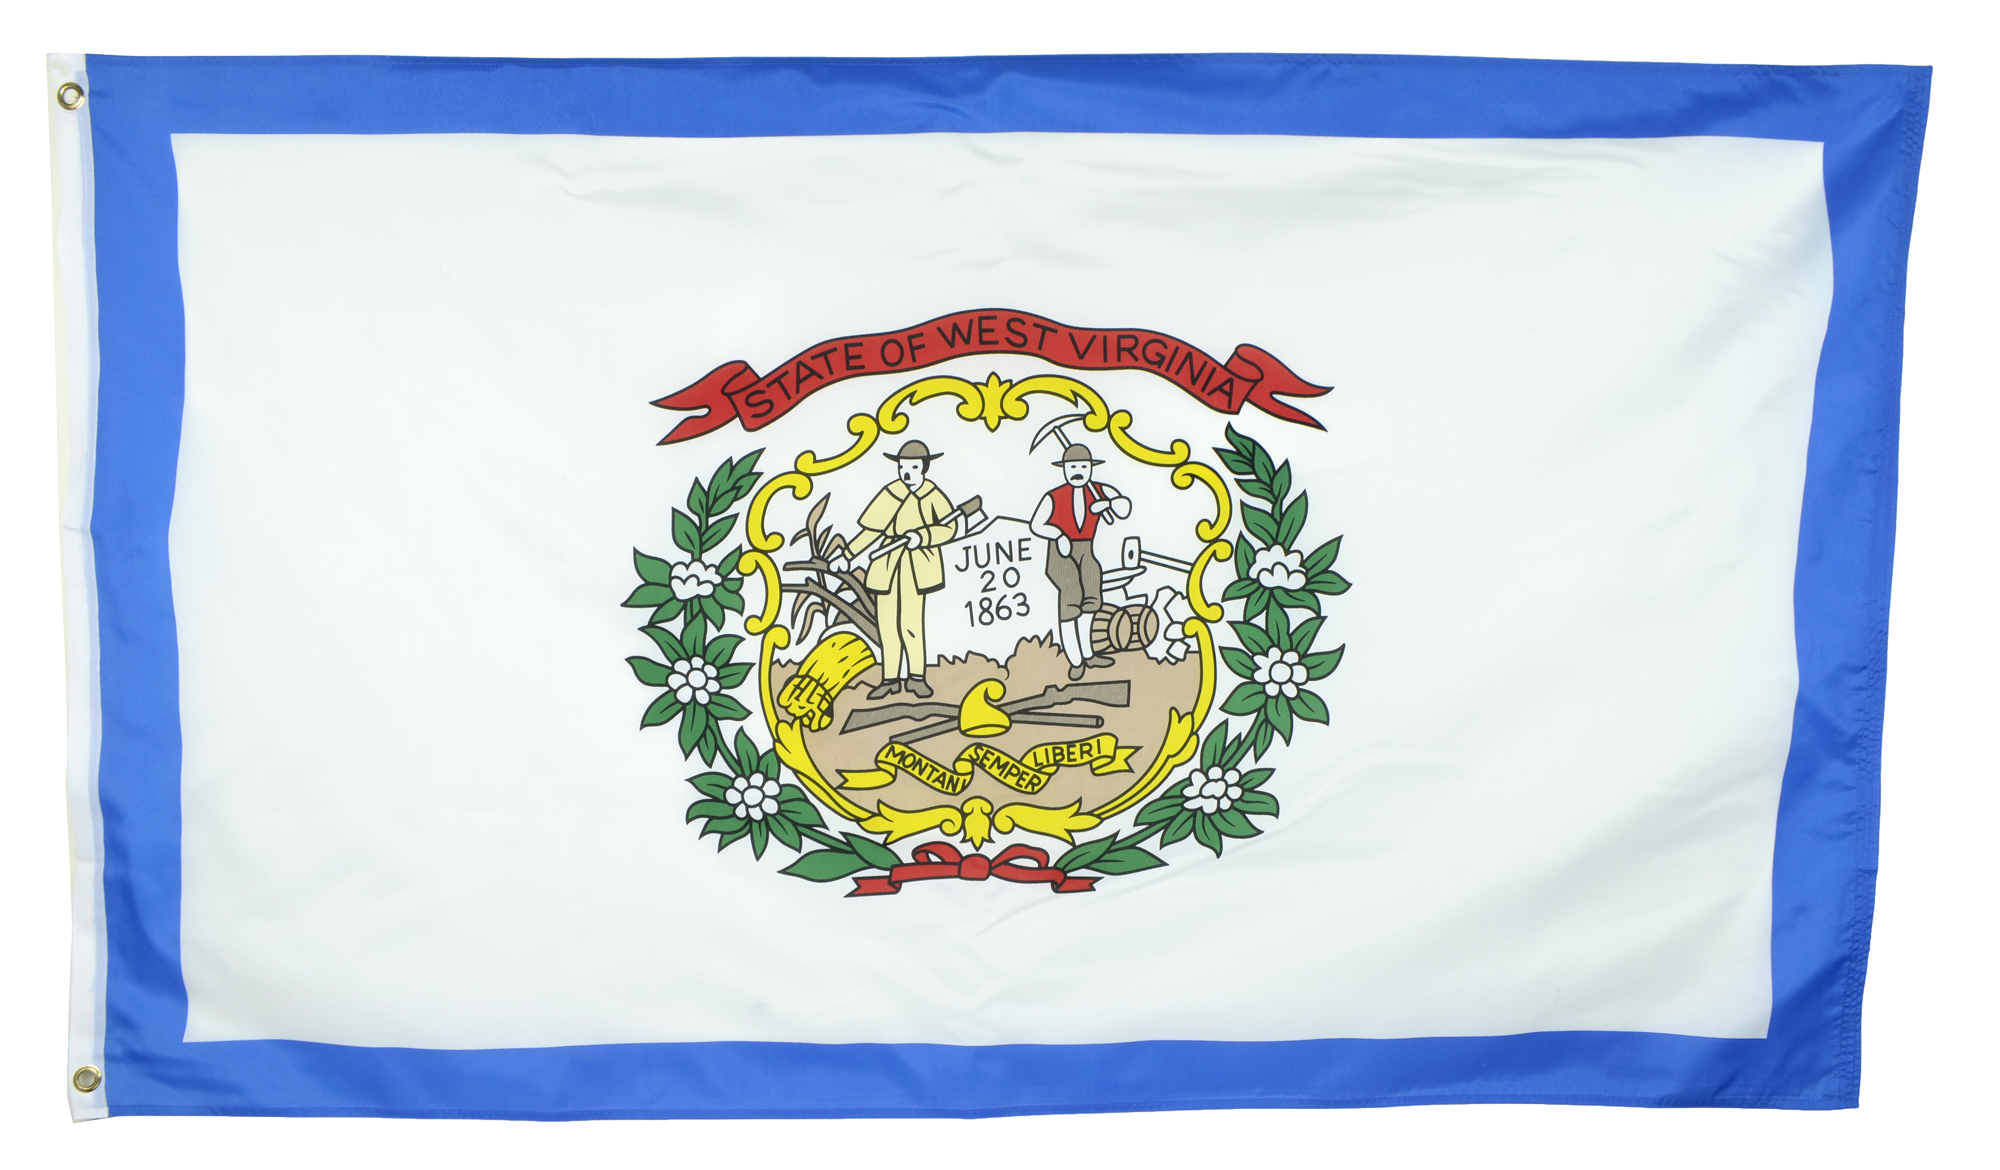 Shop72 US West Virginia State Flags - West Virginia Flag - 3x5' Flag from Sturdy 100D Polyester - Canvas Header Brass Grommets Double Stitched from Wi